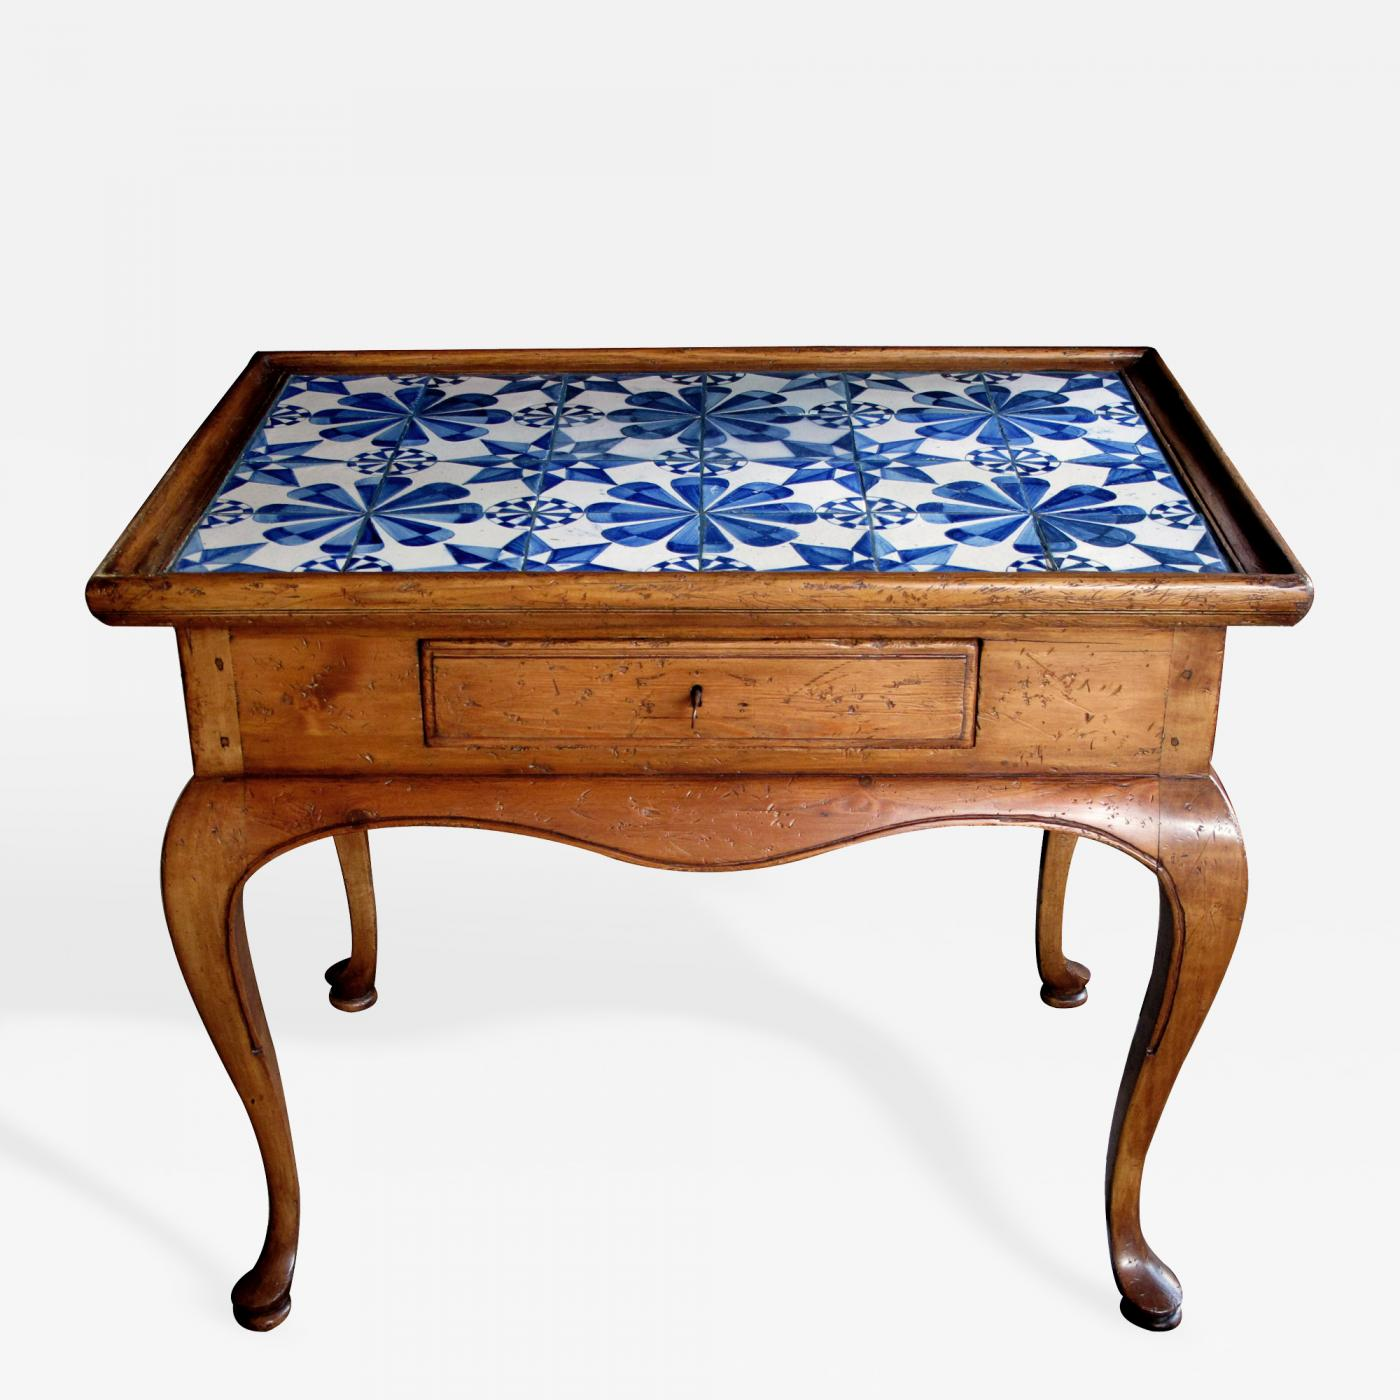 A Danish Rococo Style Stripped Pine Side Table with Delft Tile Top